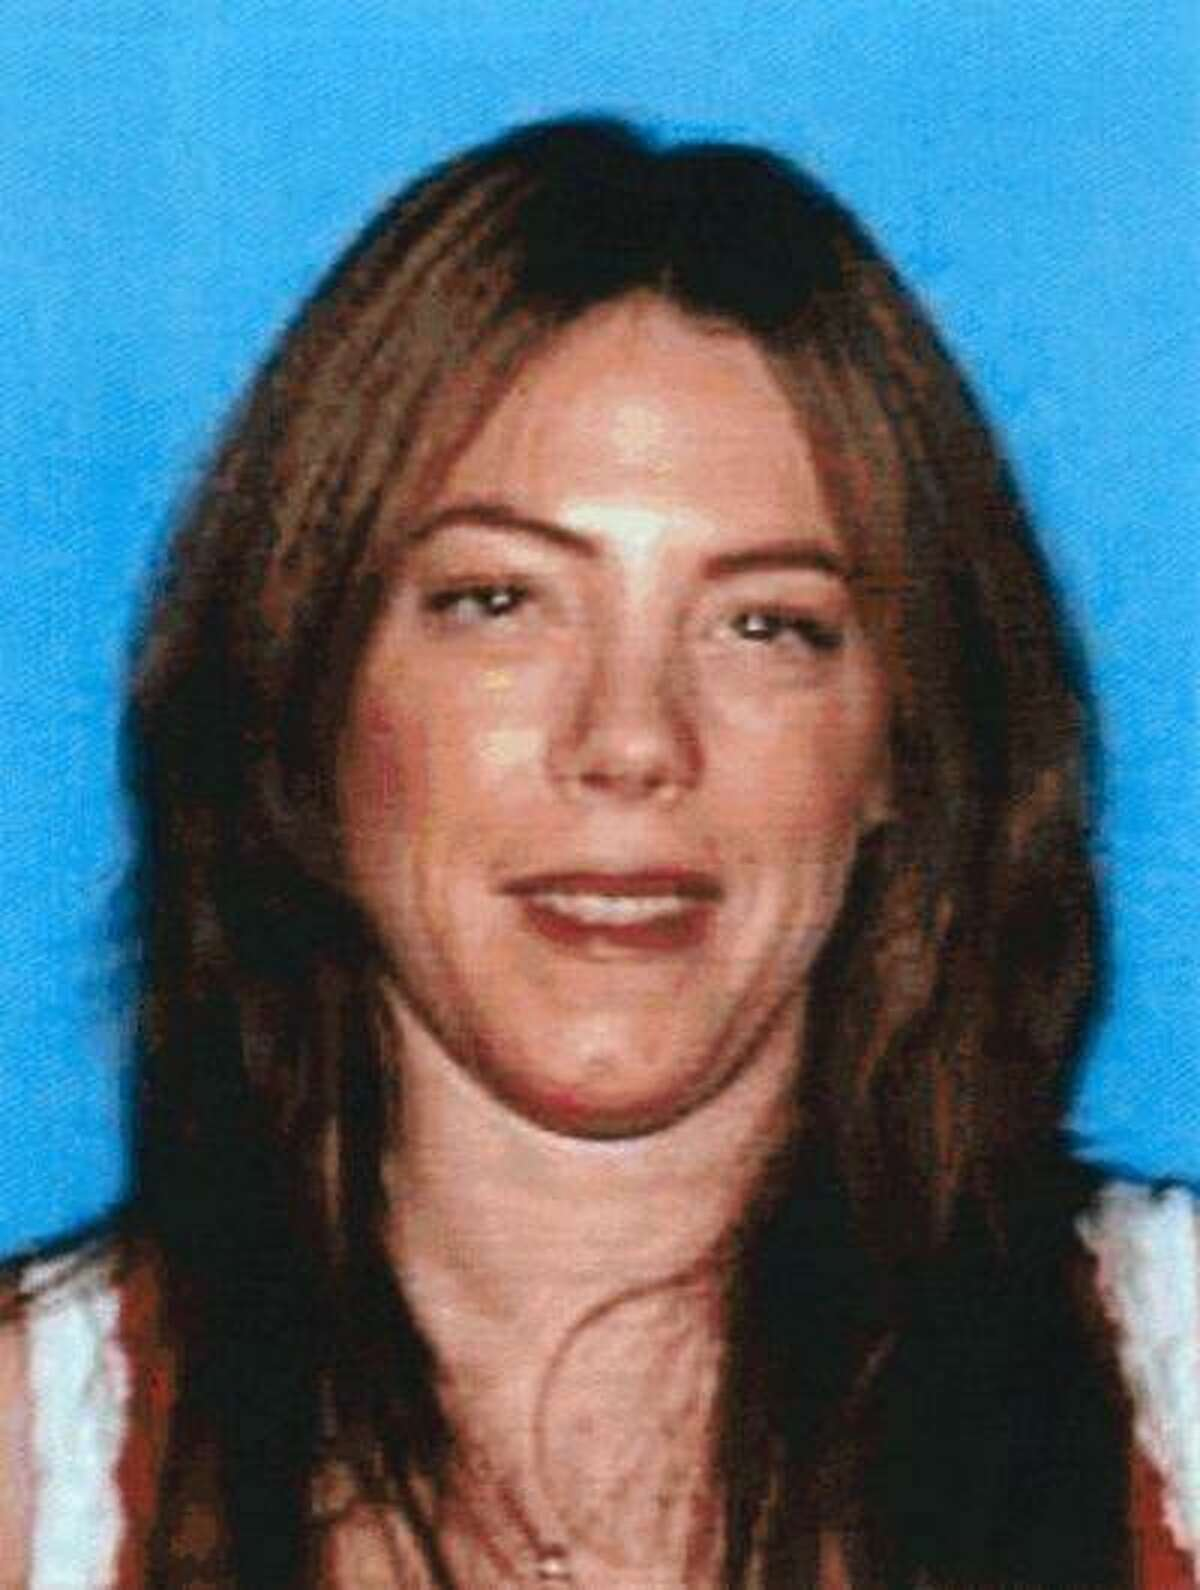 This photo provided by the Department of Motor Vehicles shows Michelle Ann Kane, 43, from the Canoga Park section of Los Angeles, who was killed Saturday, June 15, 2013, one day after she reported to police that her husband had violated a restraining order and vandalized the home they had shared. Michael Rodney Kane, 46, an elementary school teacher accused of chasing down and stabbing his estranged wife to death, was arrested Monday, June 17, 2013. (AP Photo/Department of Motor Vehicles)